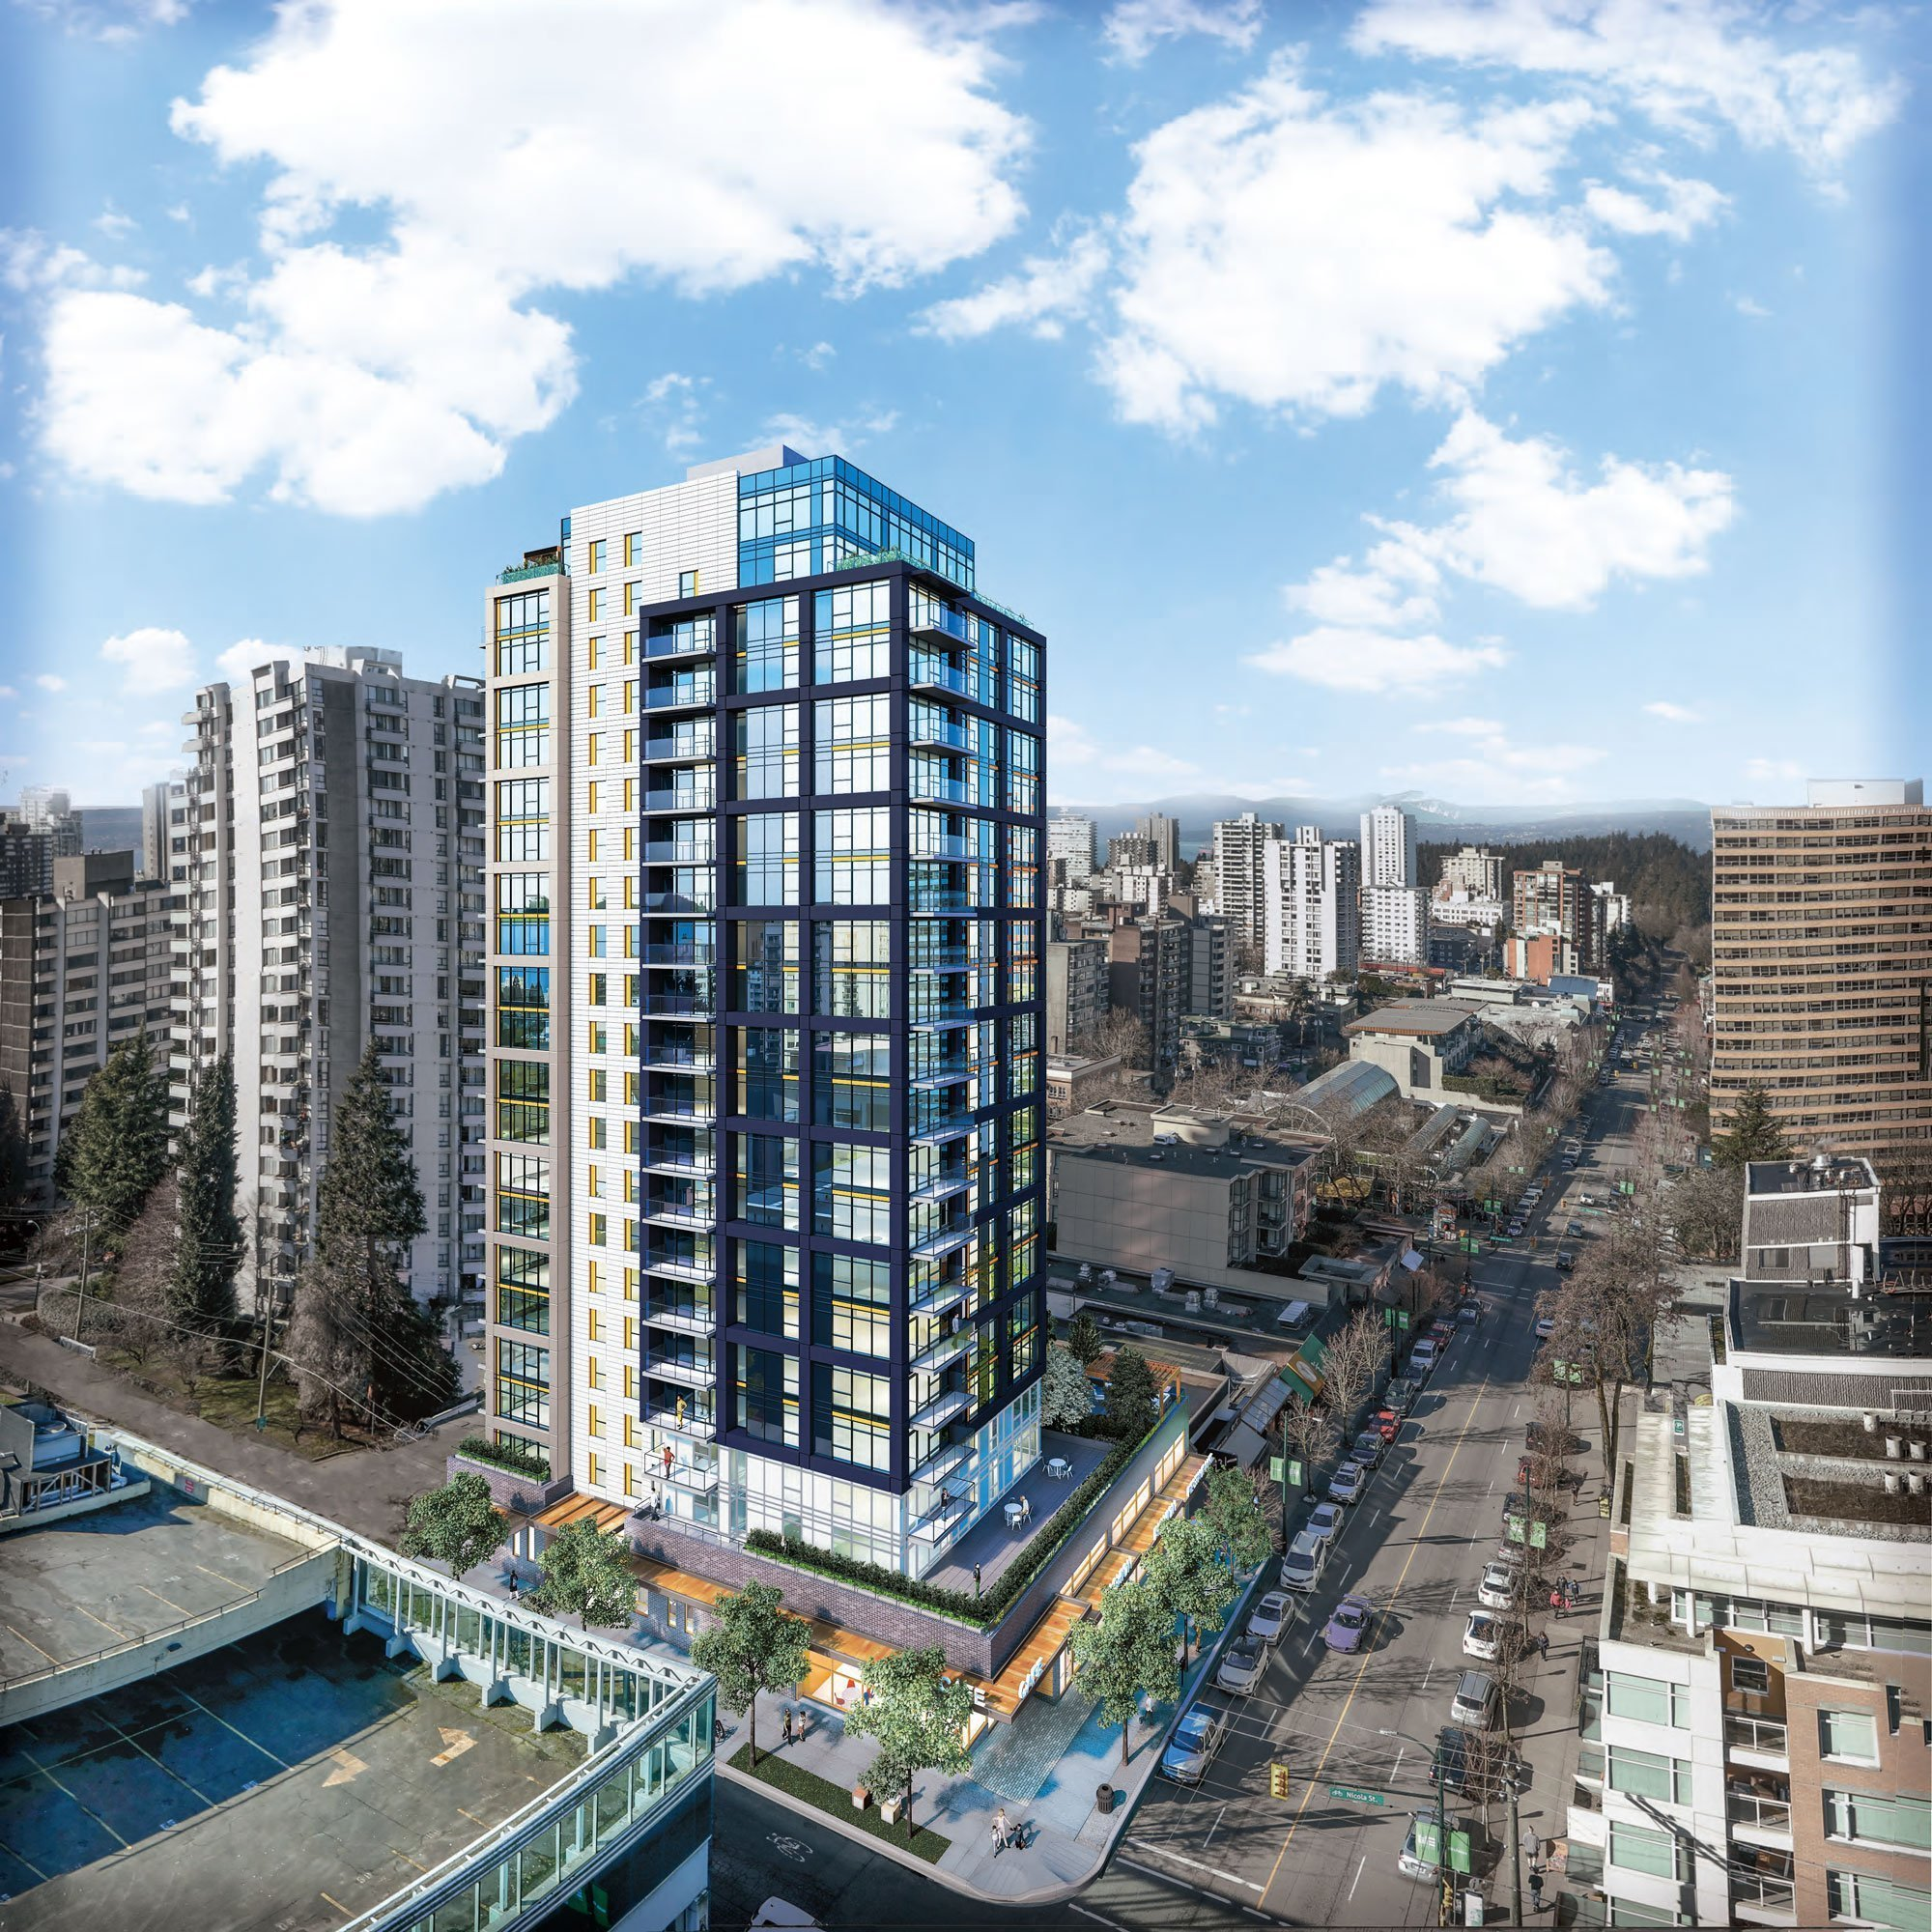 GWL breaks ground on new rental apartment tower at 1500 Robson Street